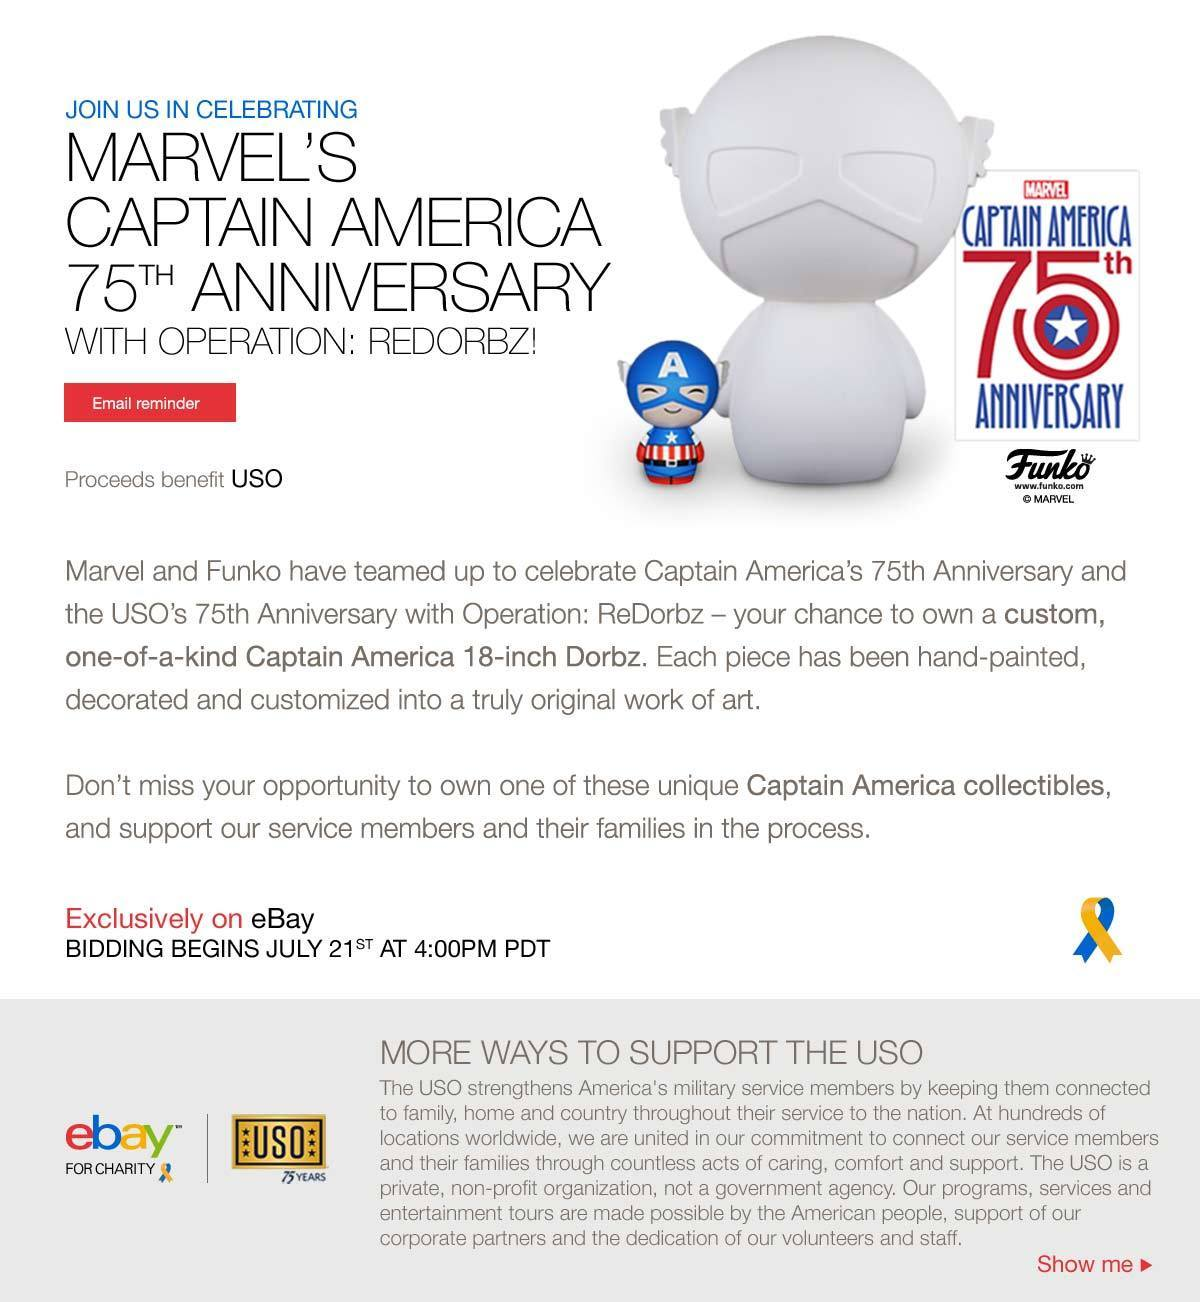 Funko, Marvel and the USO to Celebrate Captain America's 75th Anniversary with Operation: ReDorbz!